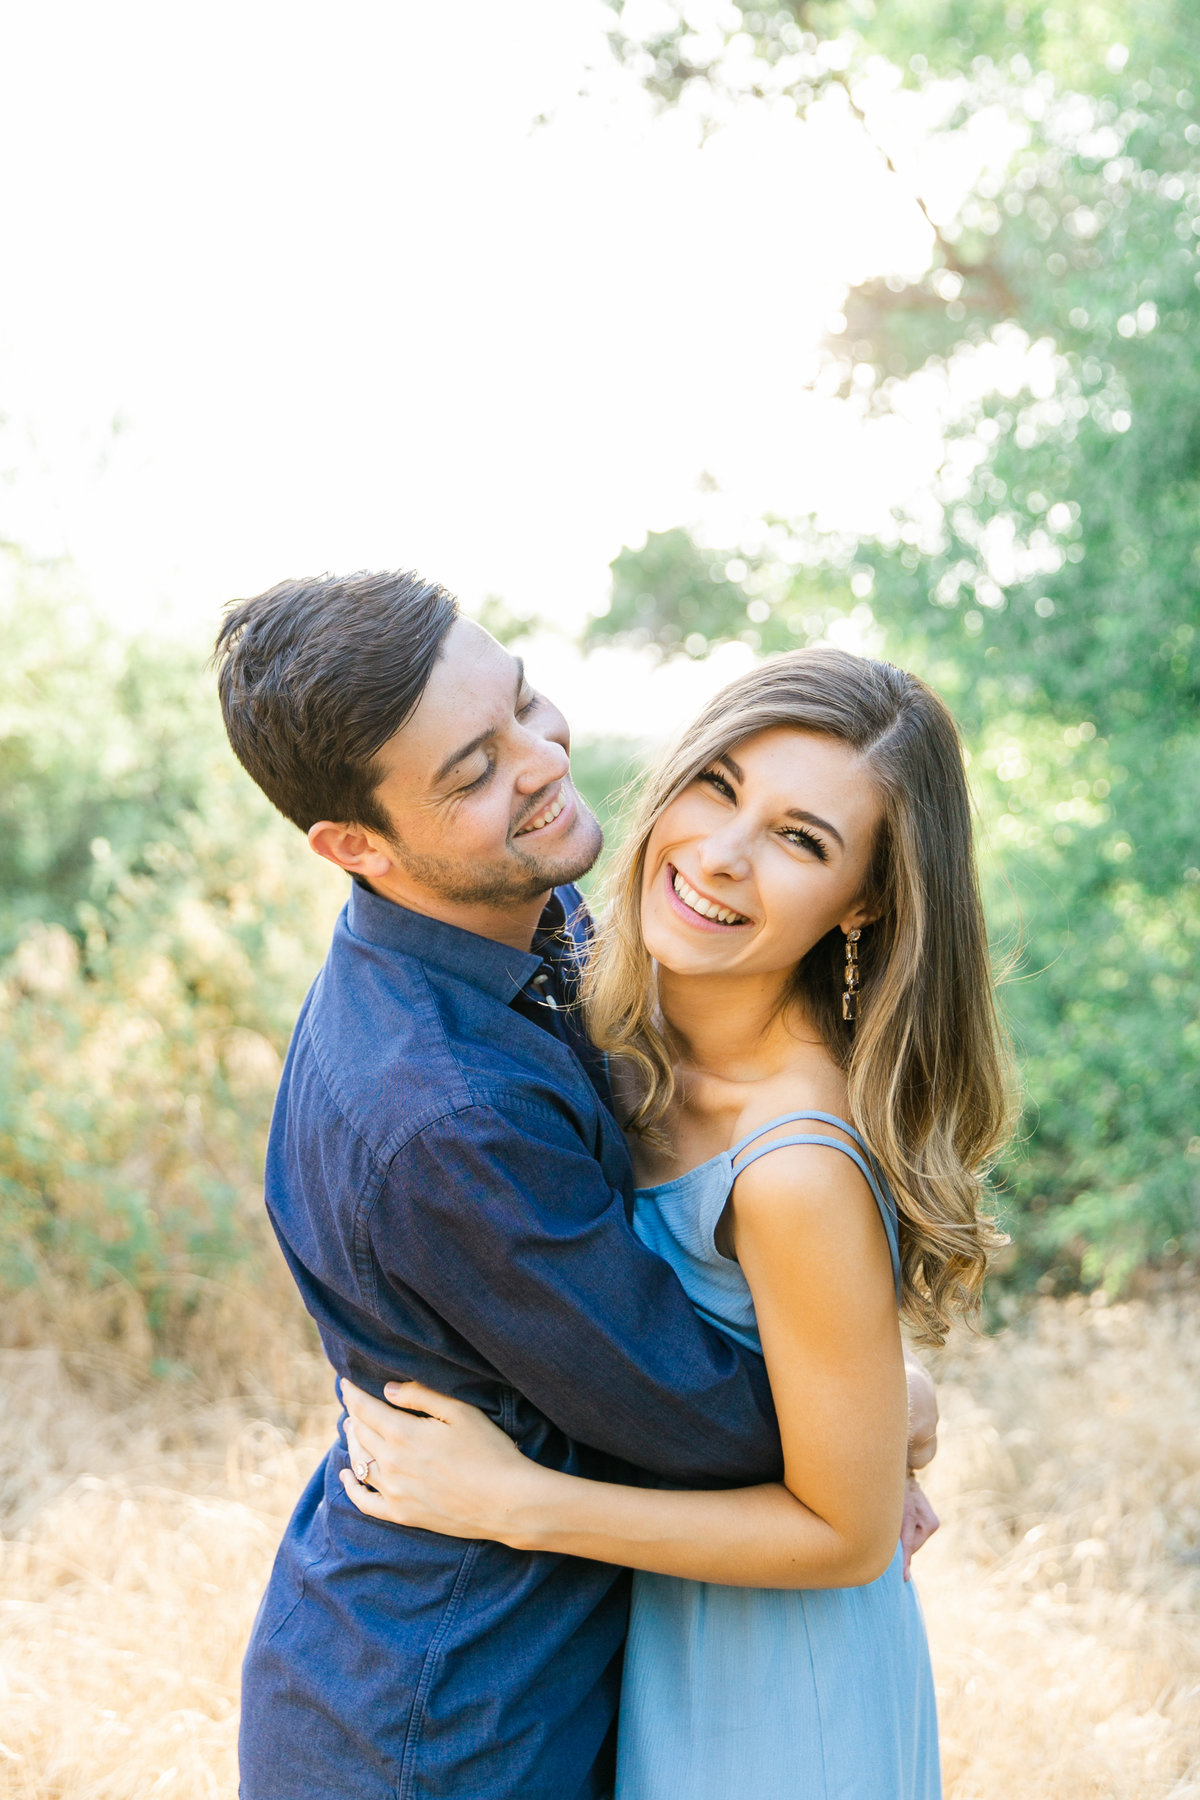 Karlie Colleen Photography - Arizona Desert Engagement - Brynne & Josh -53